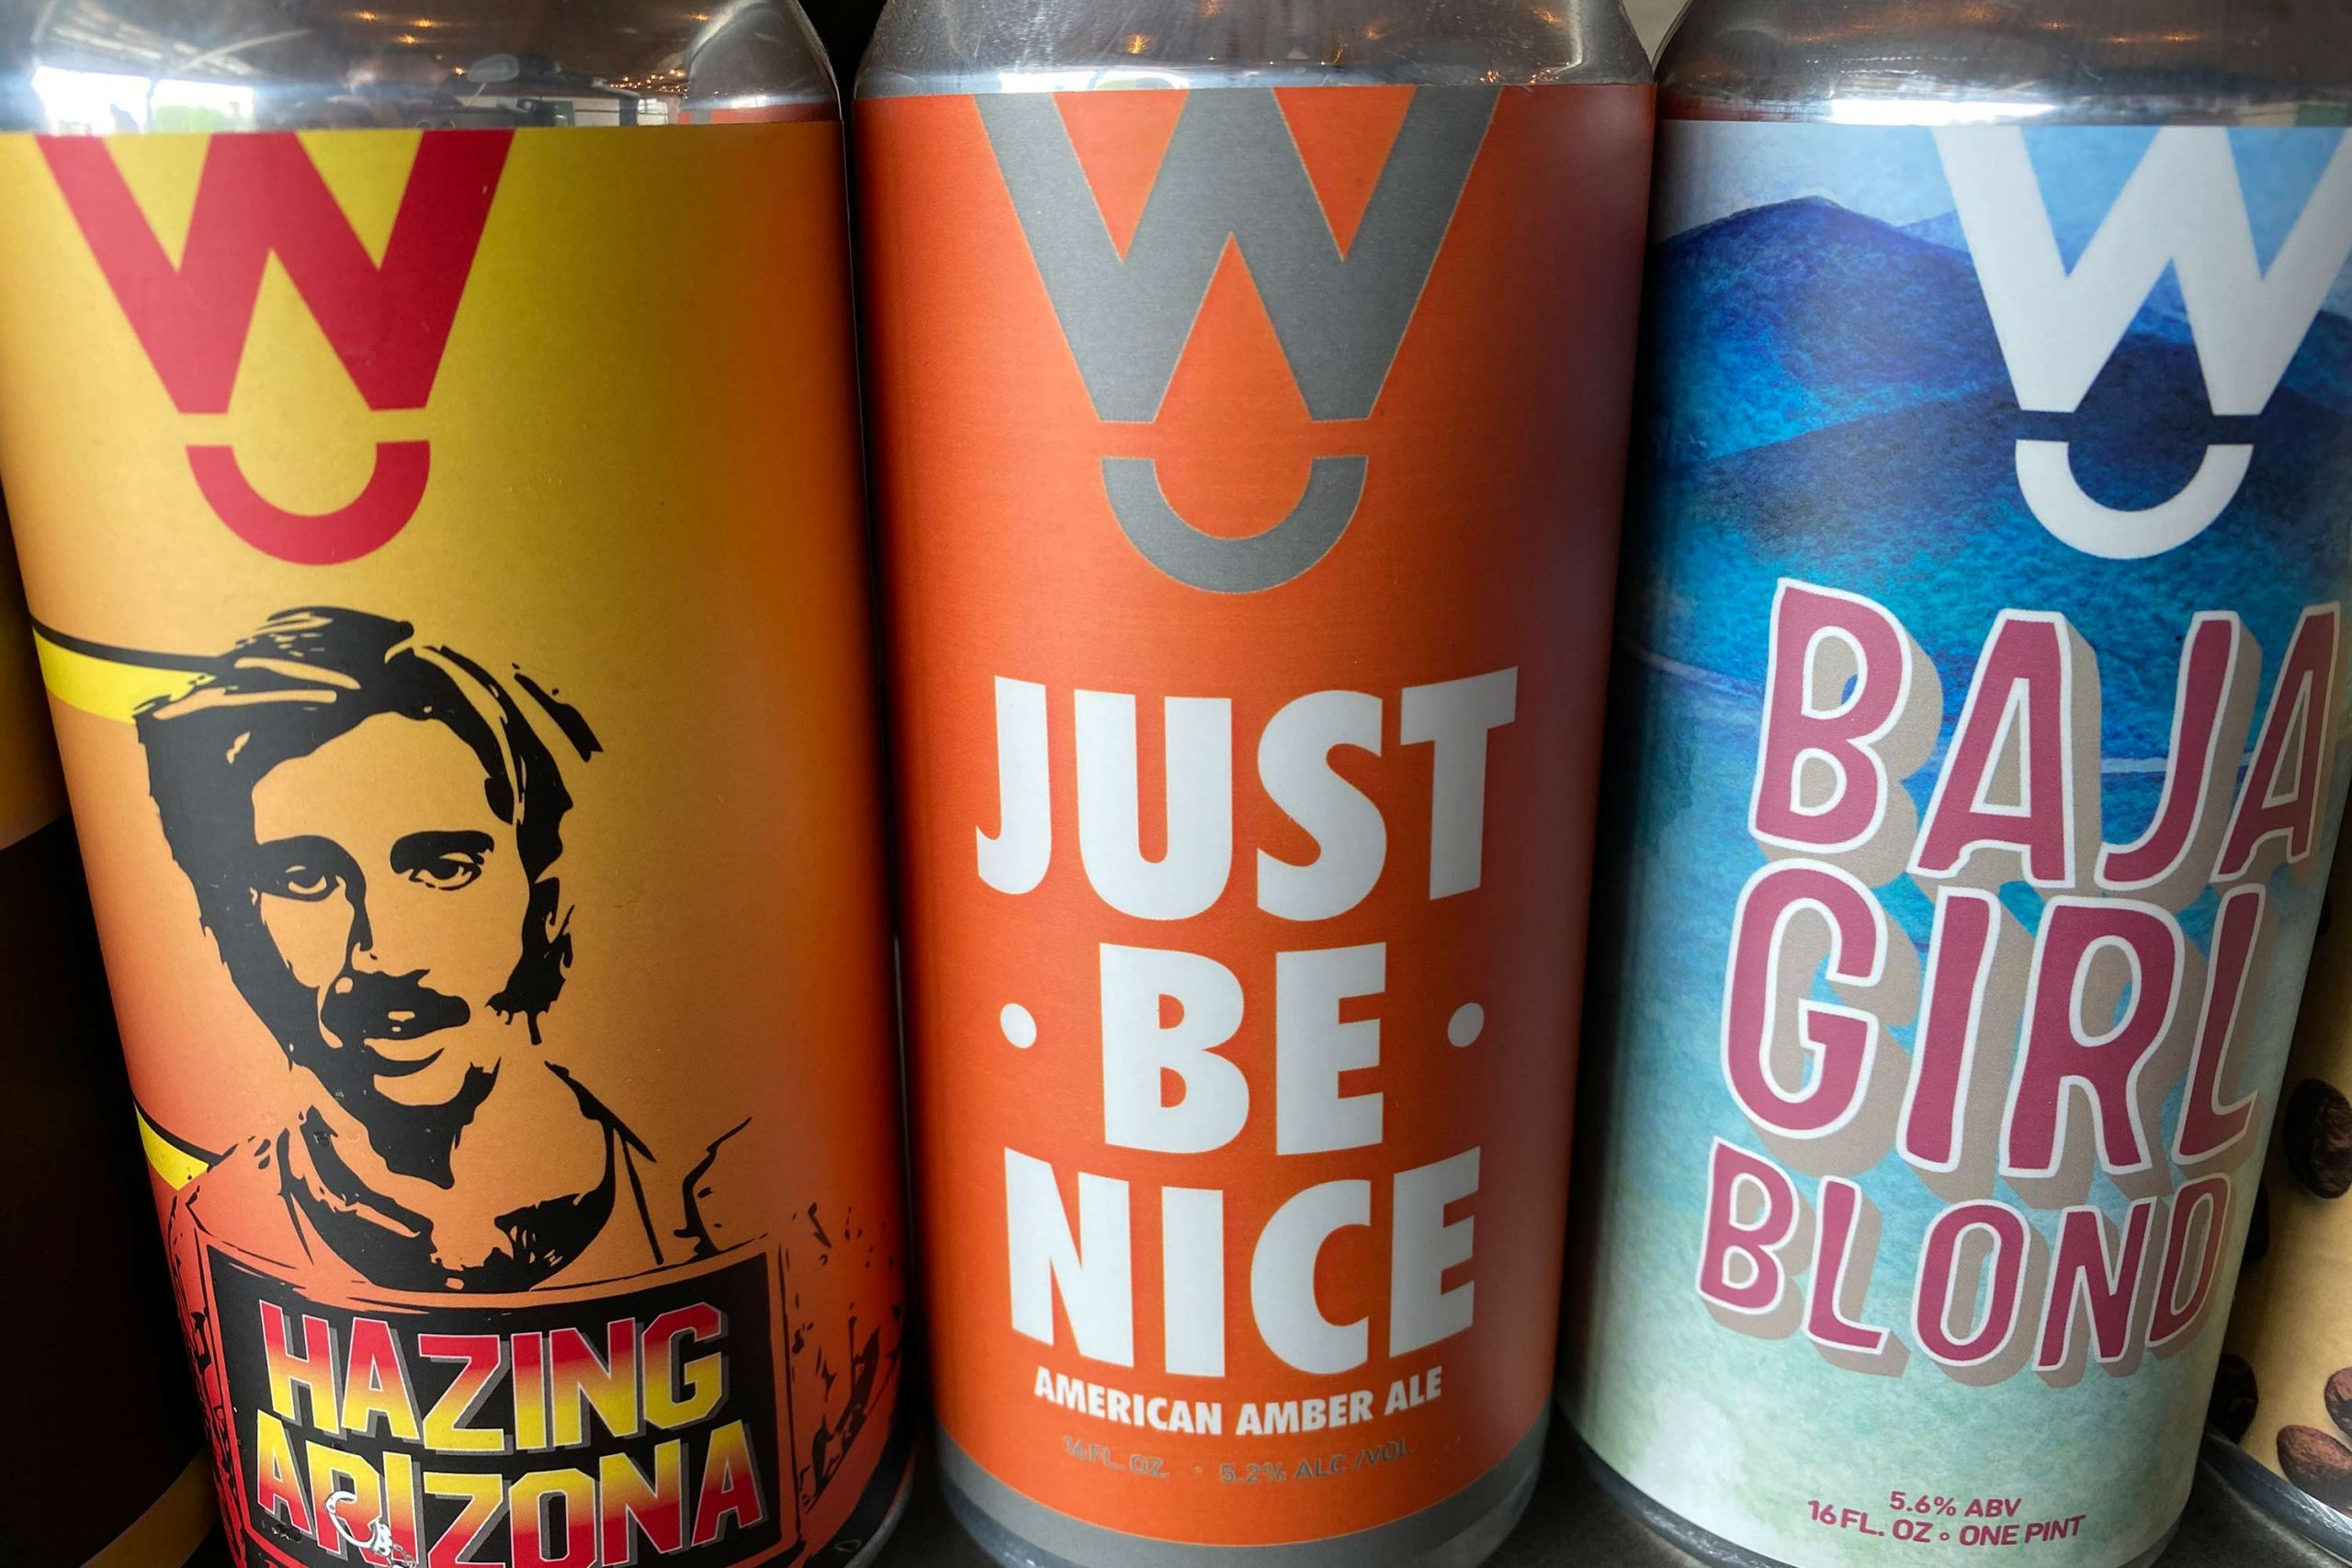 Just Be Nice American amber ale from Walter Station Brewery